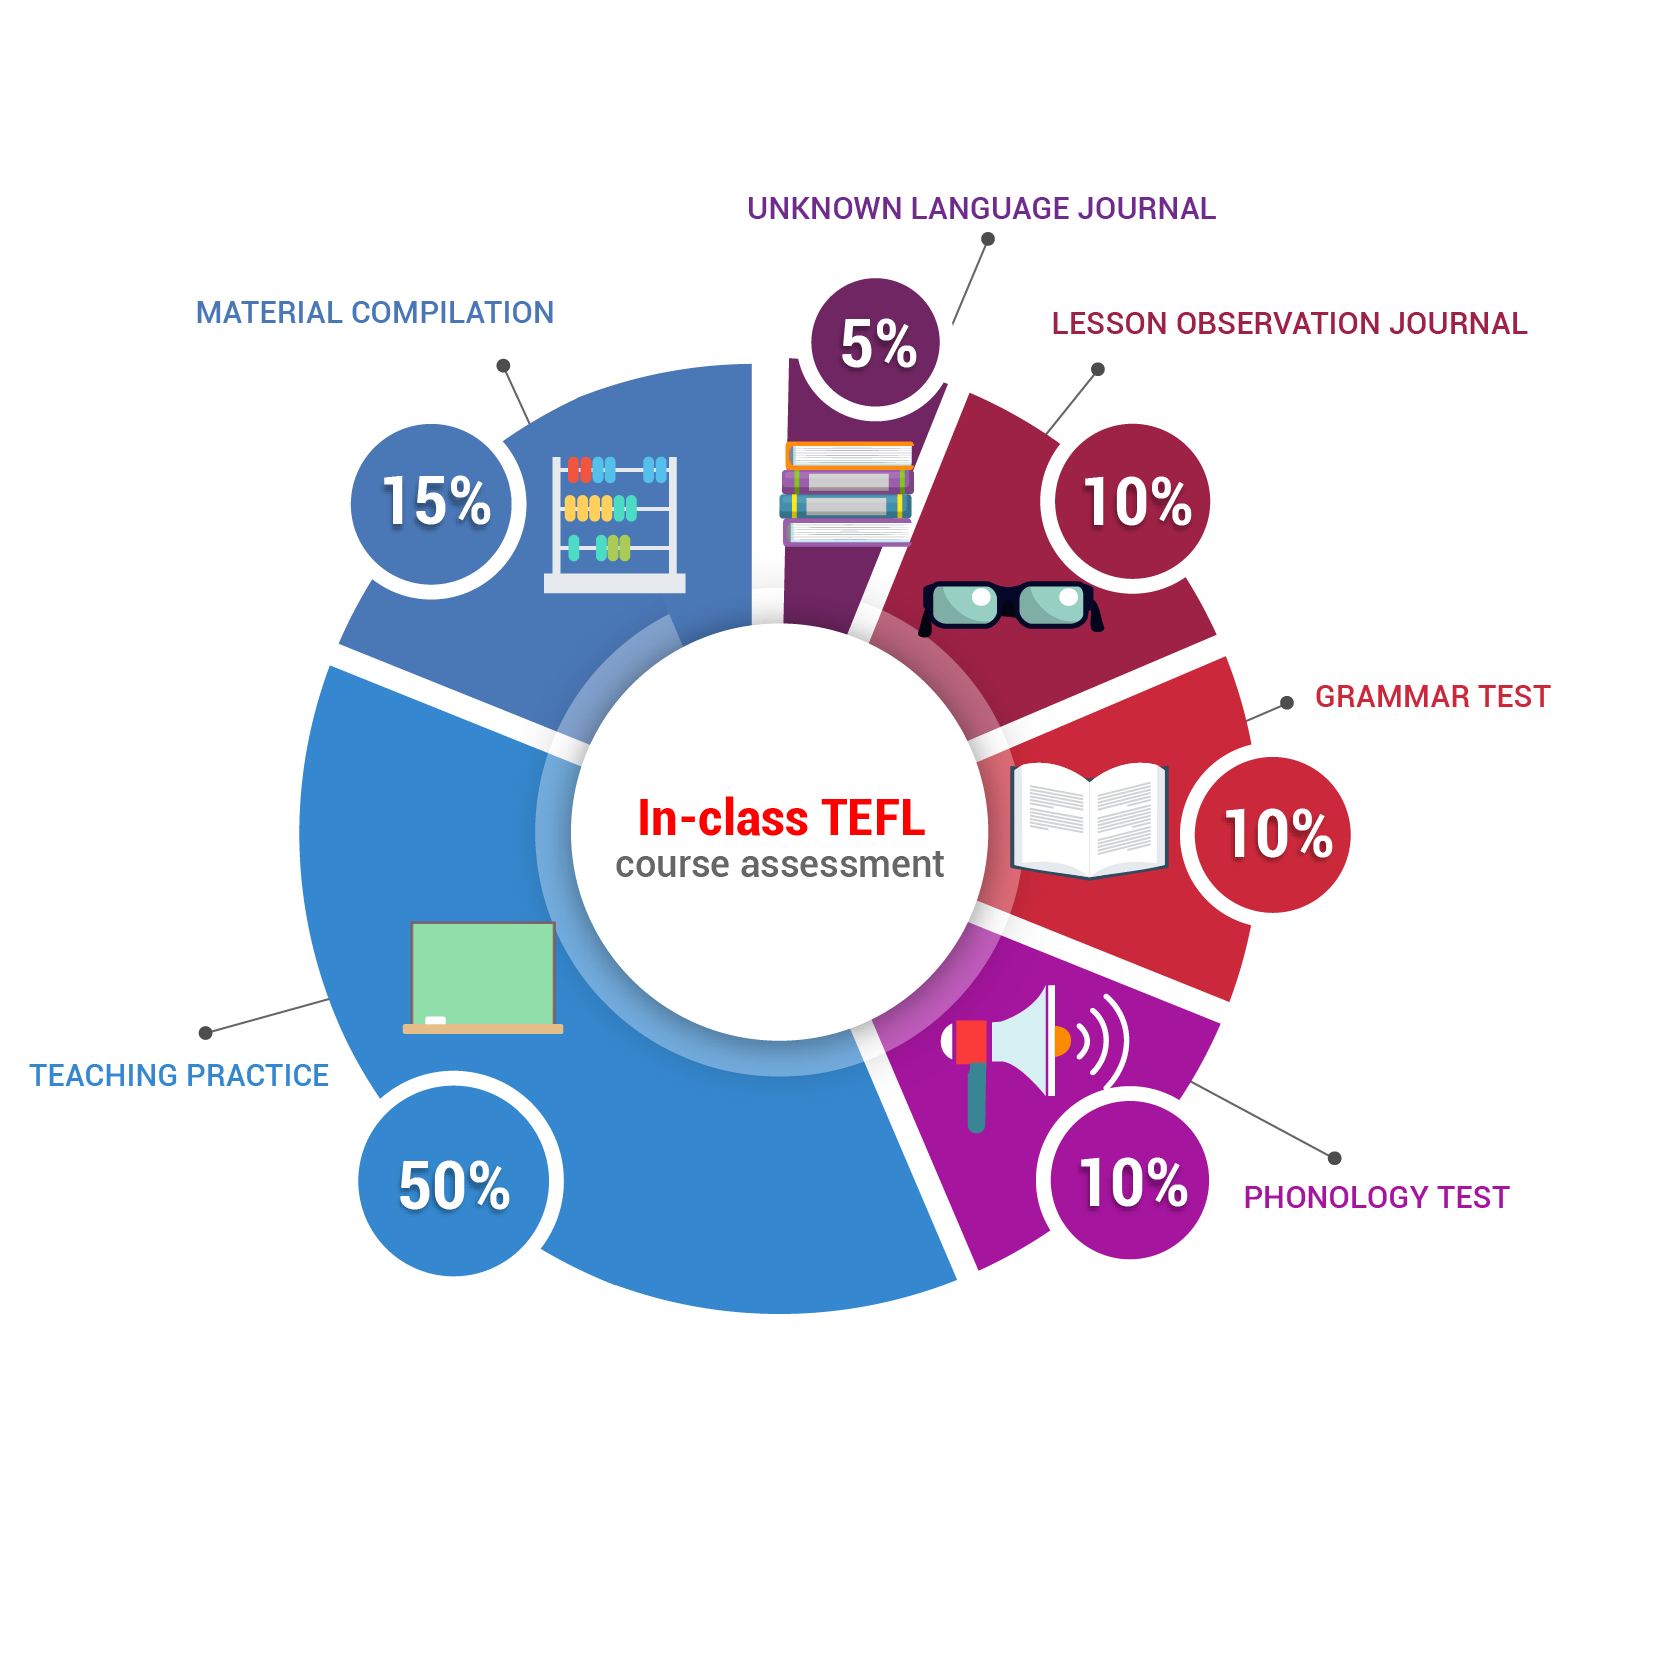 in-class TEFL course assessment pie chart